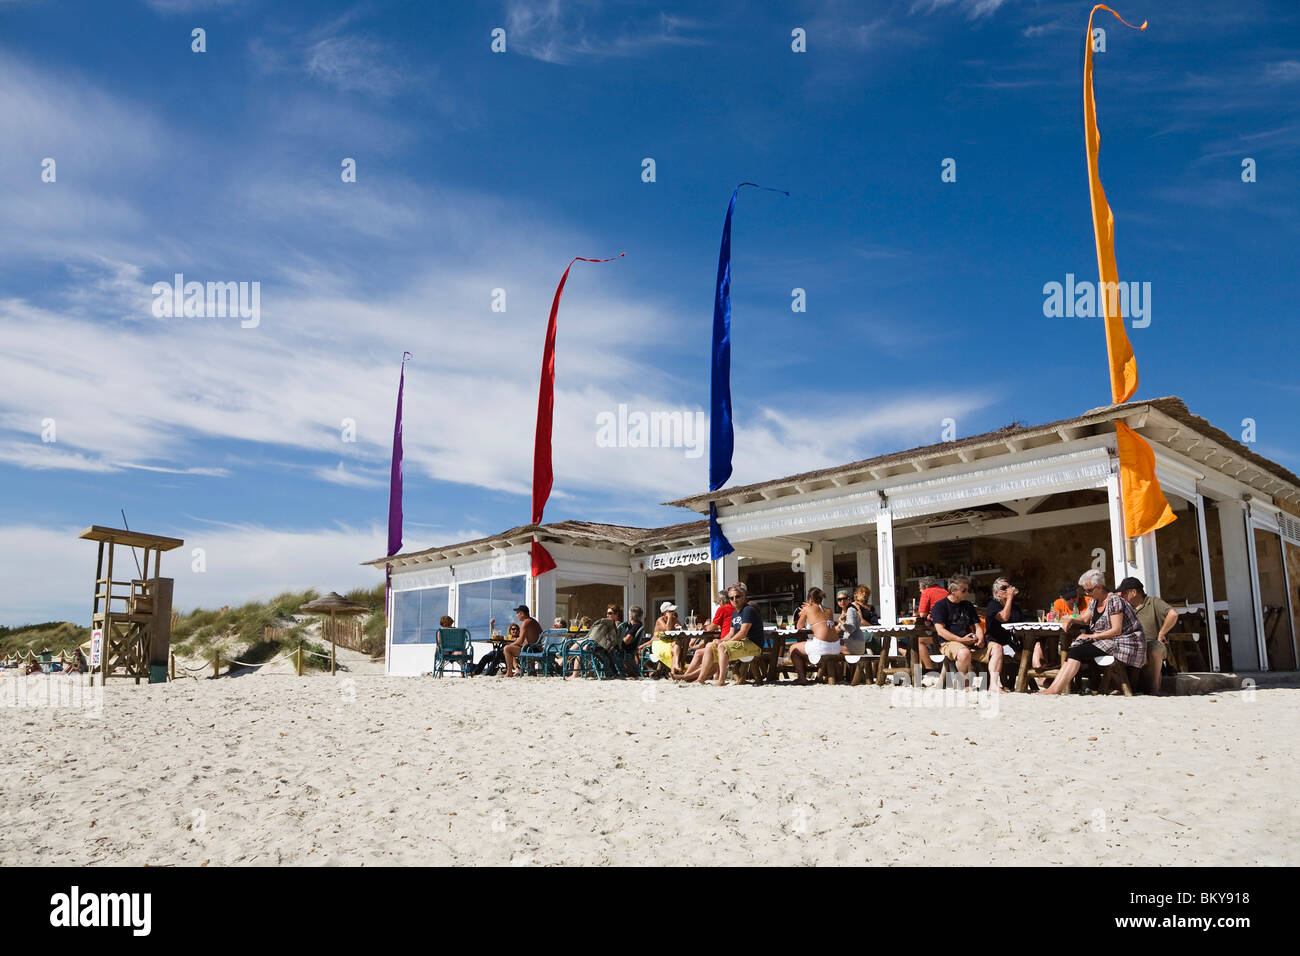 People siting in front of a beach bar at the beach of Es Trenc, Mallorca, Balearic Islands, Spain, Europe - Stock Image